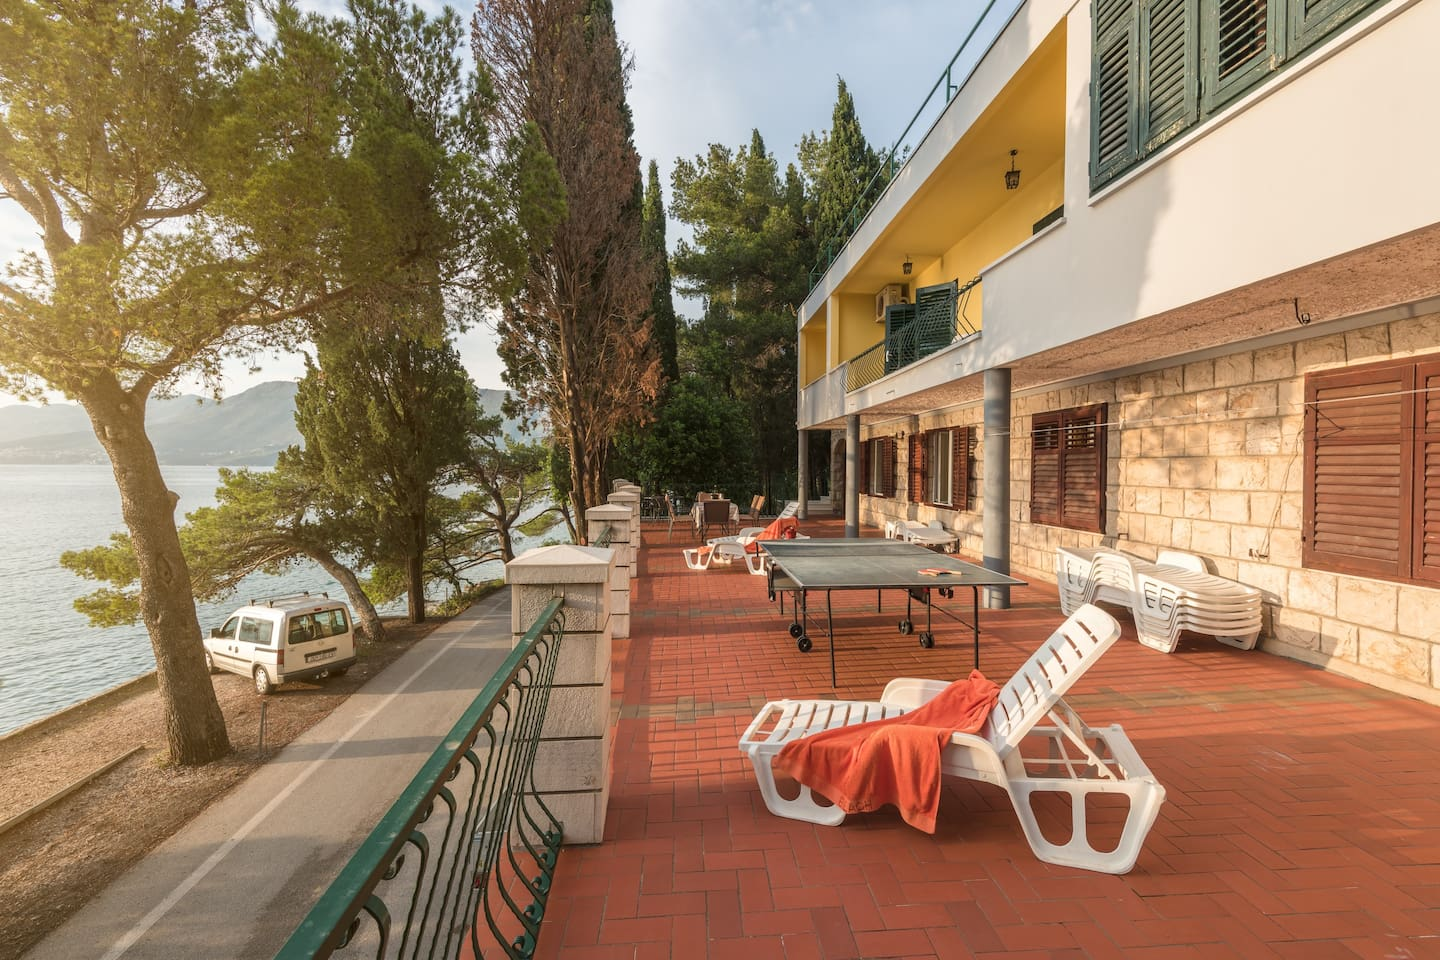 Terrace with sunbeds, table tennis, dining table